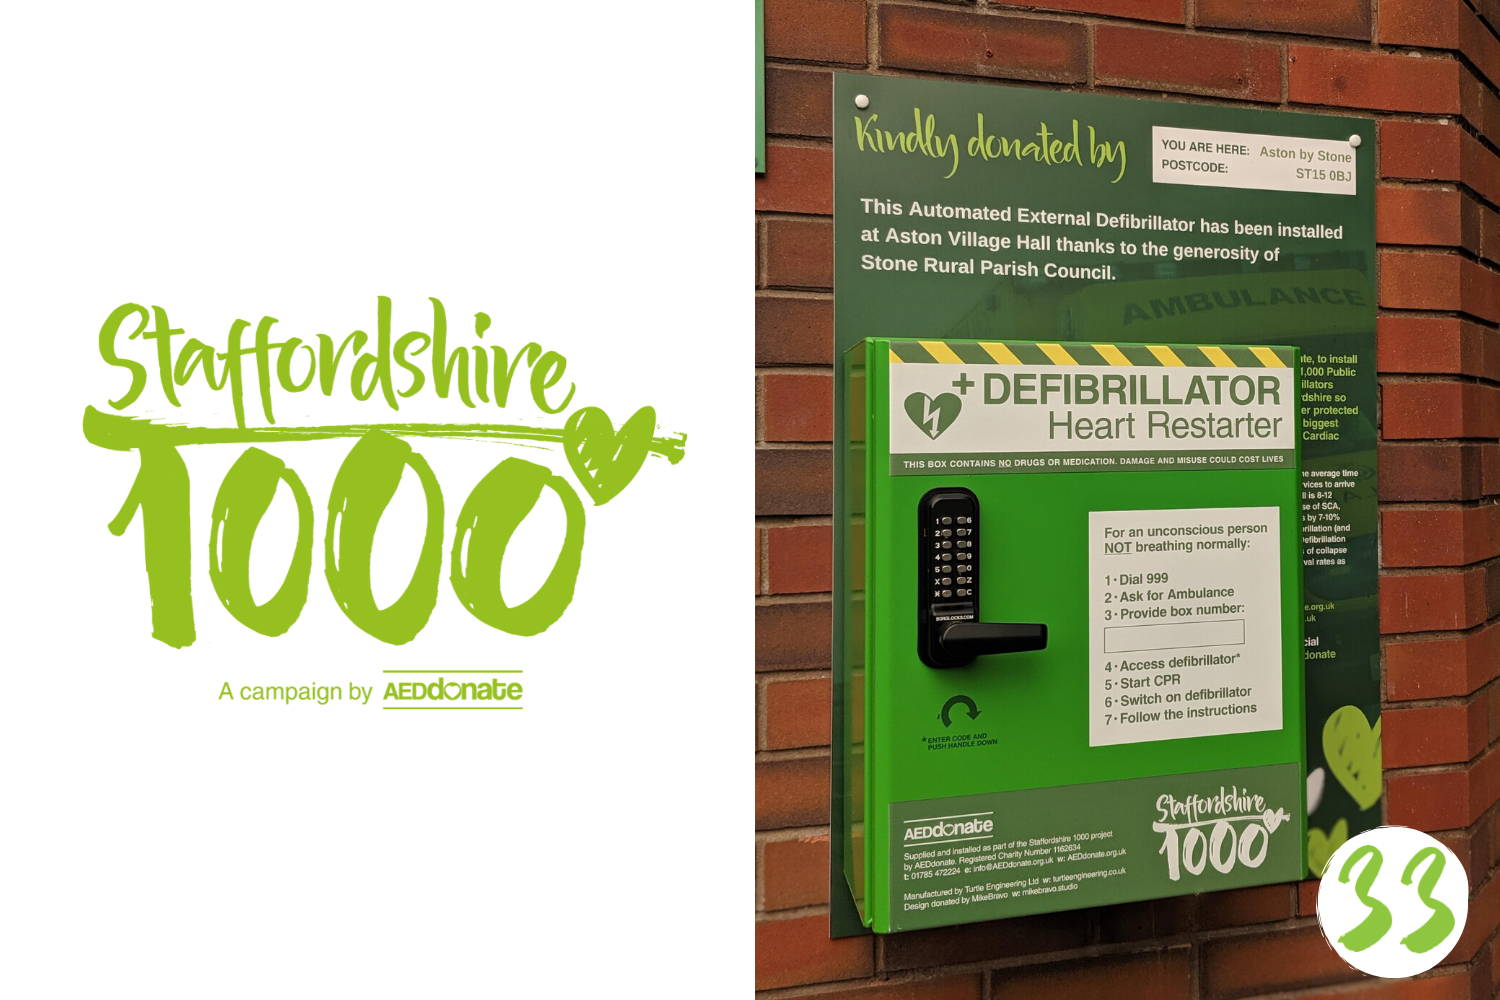 Defibrillator installed at Aston Village Hall